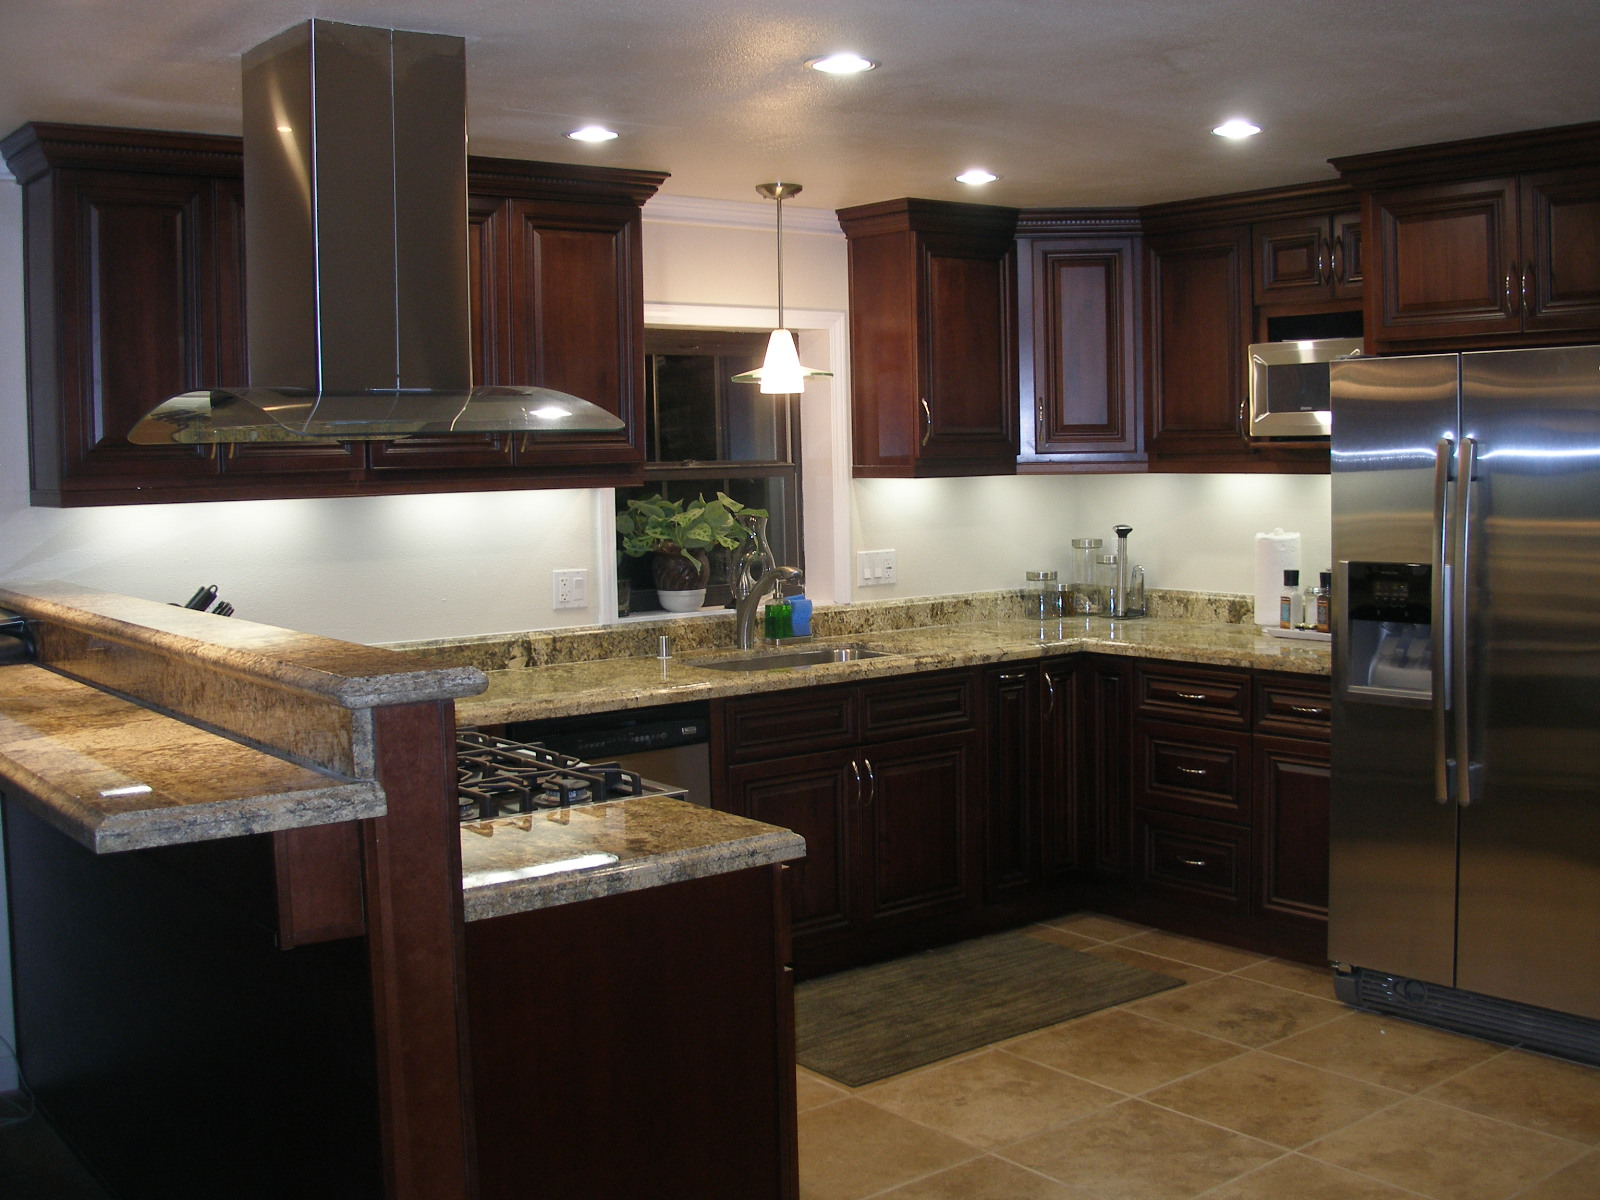 Image gallery kitchen redesign for Best kitchen remodel ideas